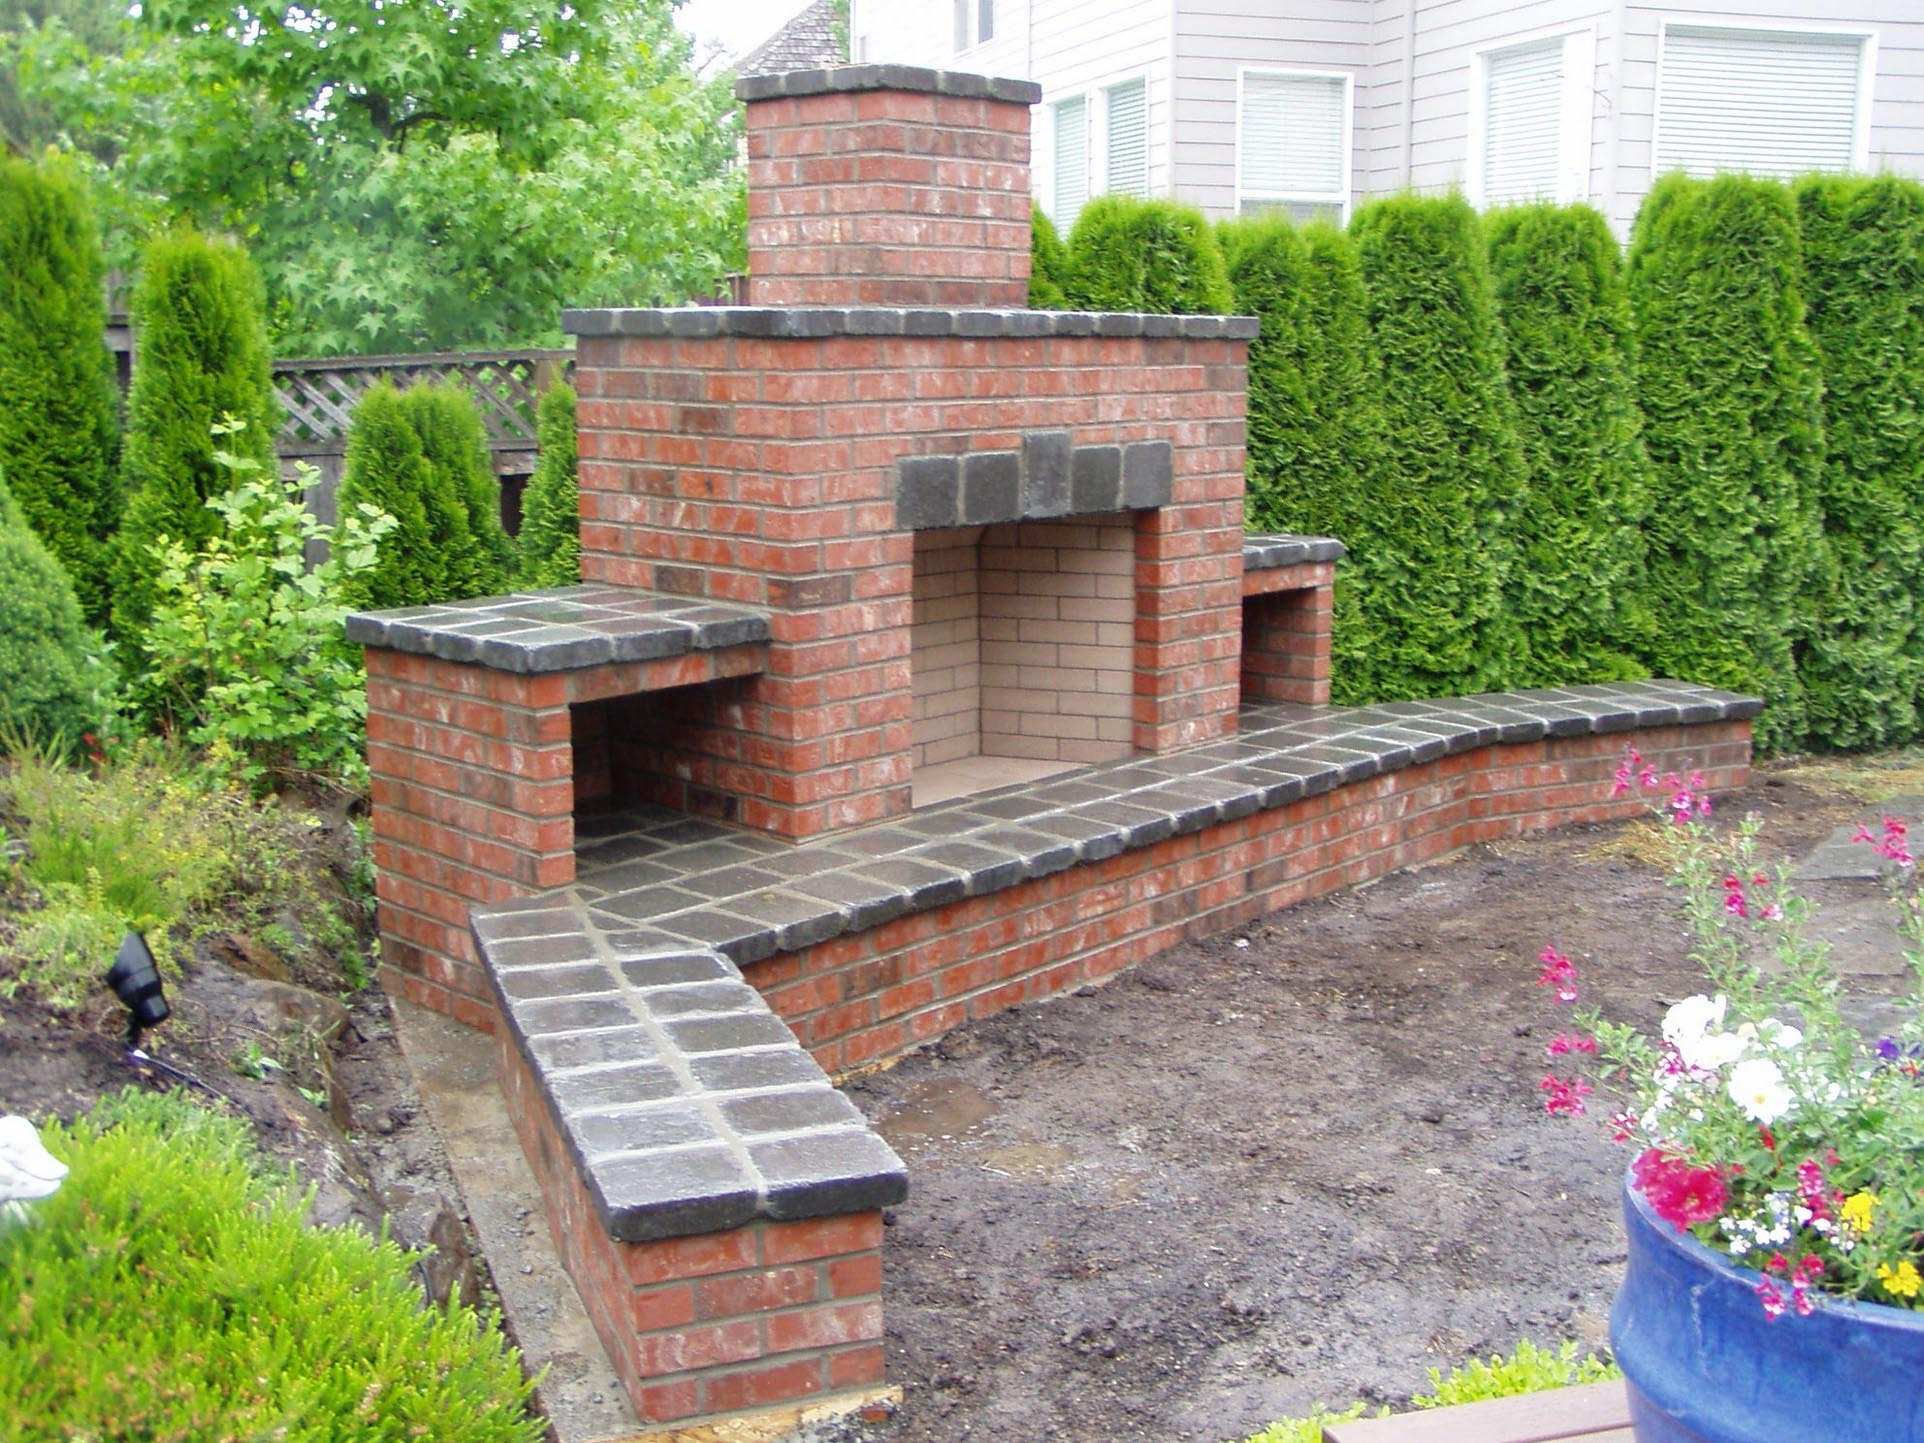 Brick outdoor fireplace peculiarities fireplace designs Outdoor fireplace design ideas